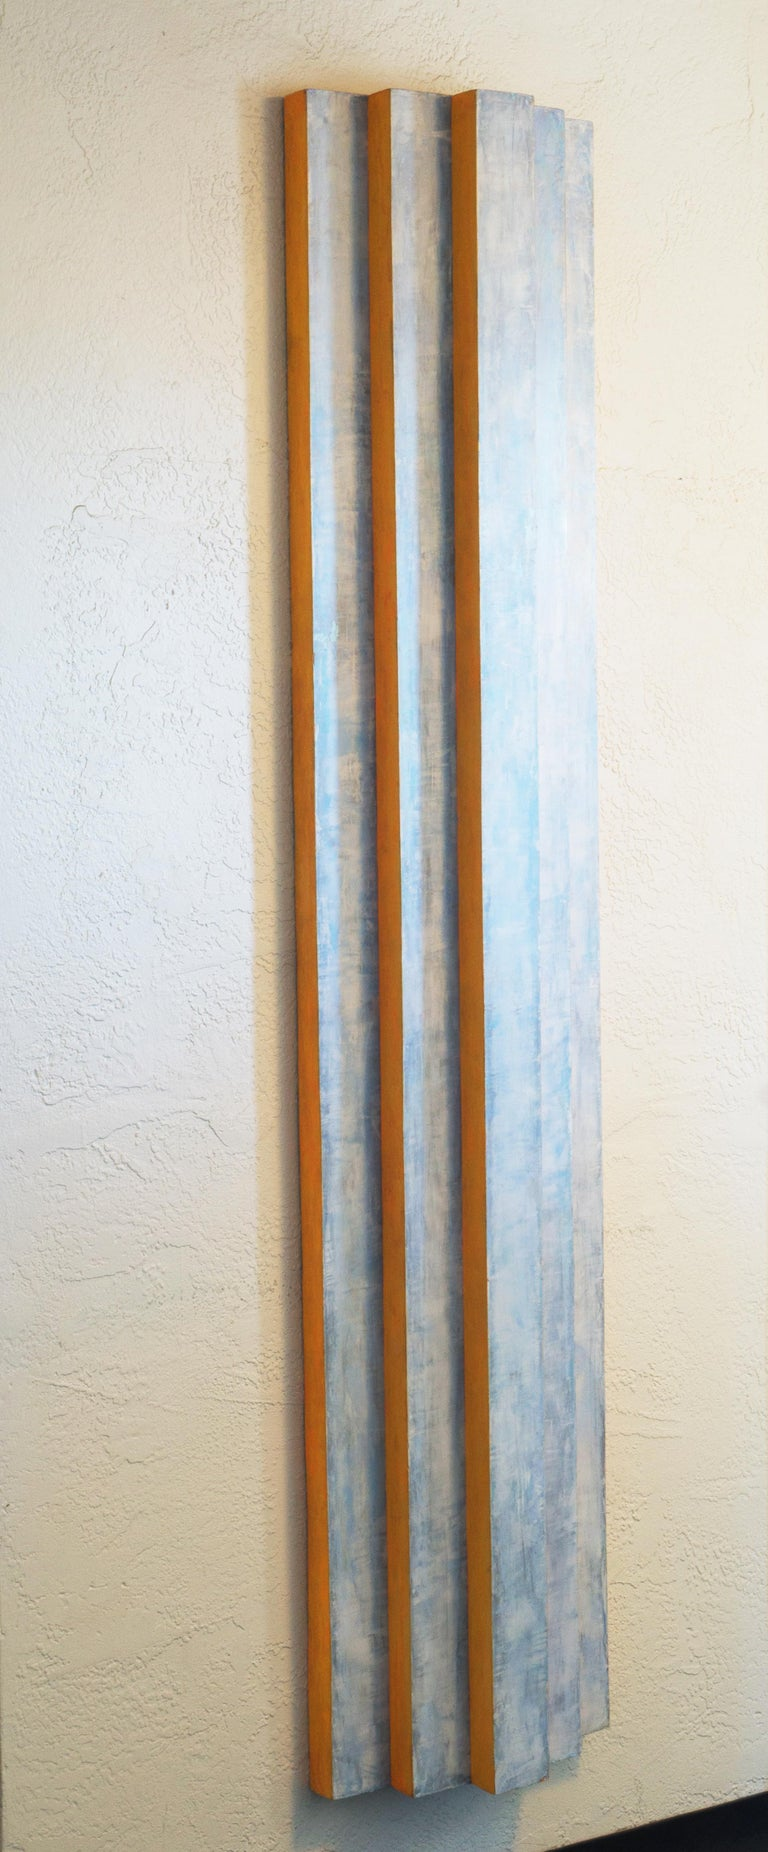 'Pillar, Coral and Ice', California, San Francisco Art Institute - Abstract Geometric Sculpture by Irby Walton